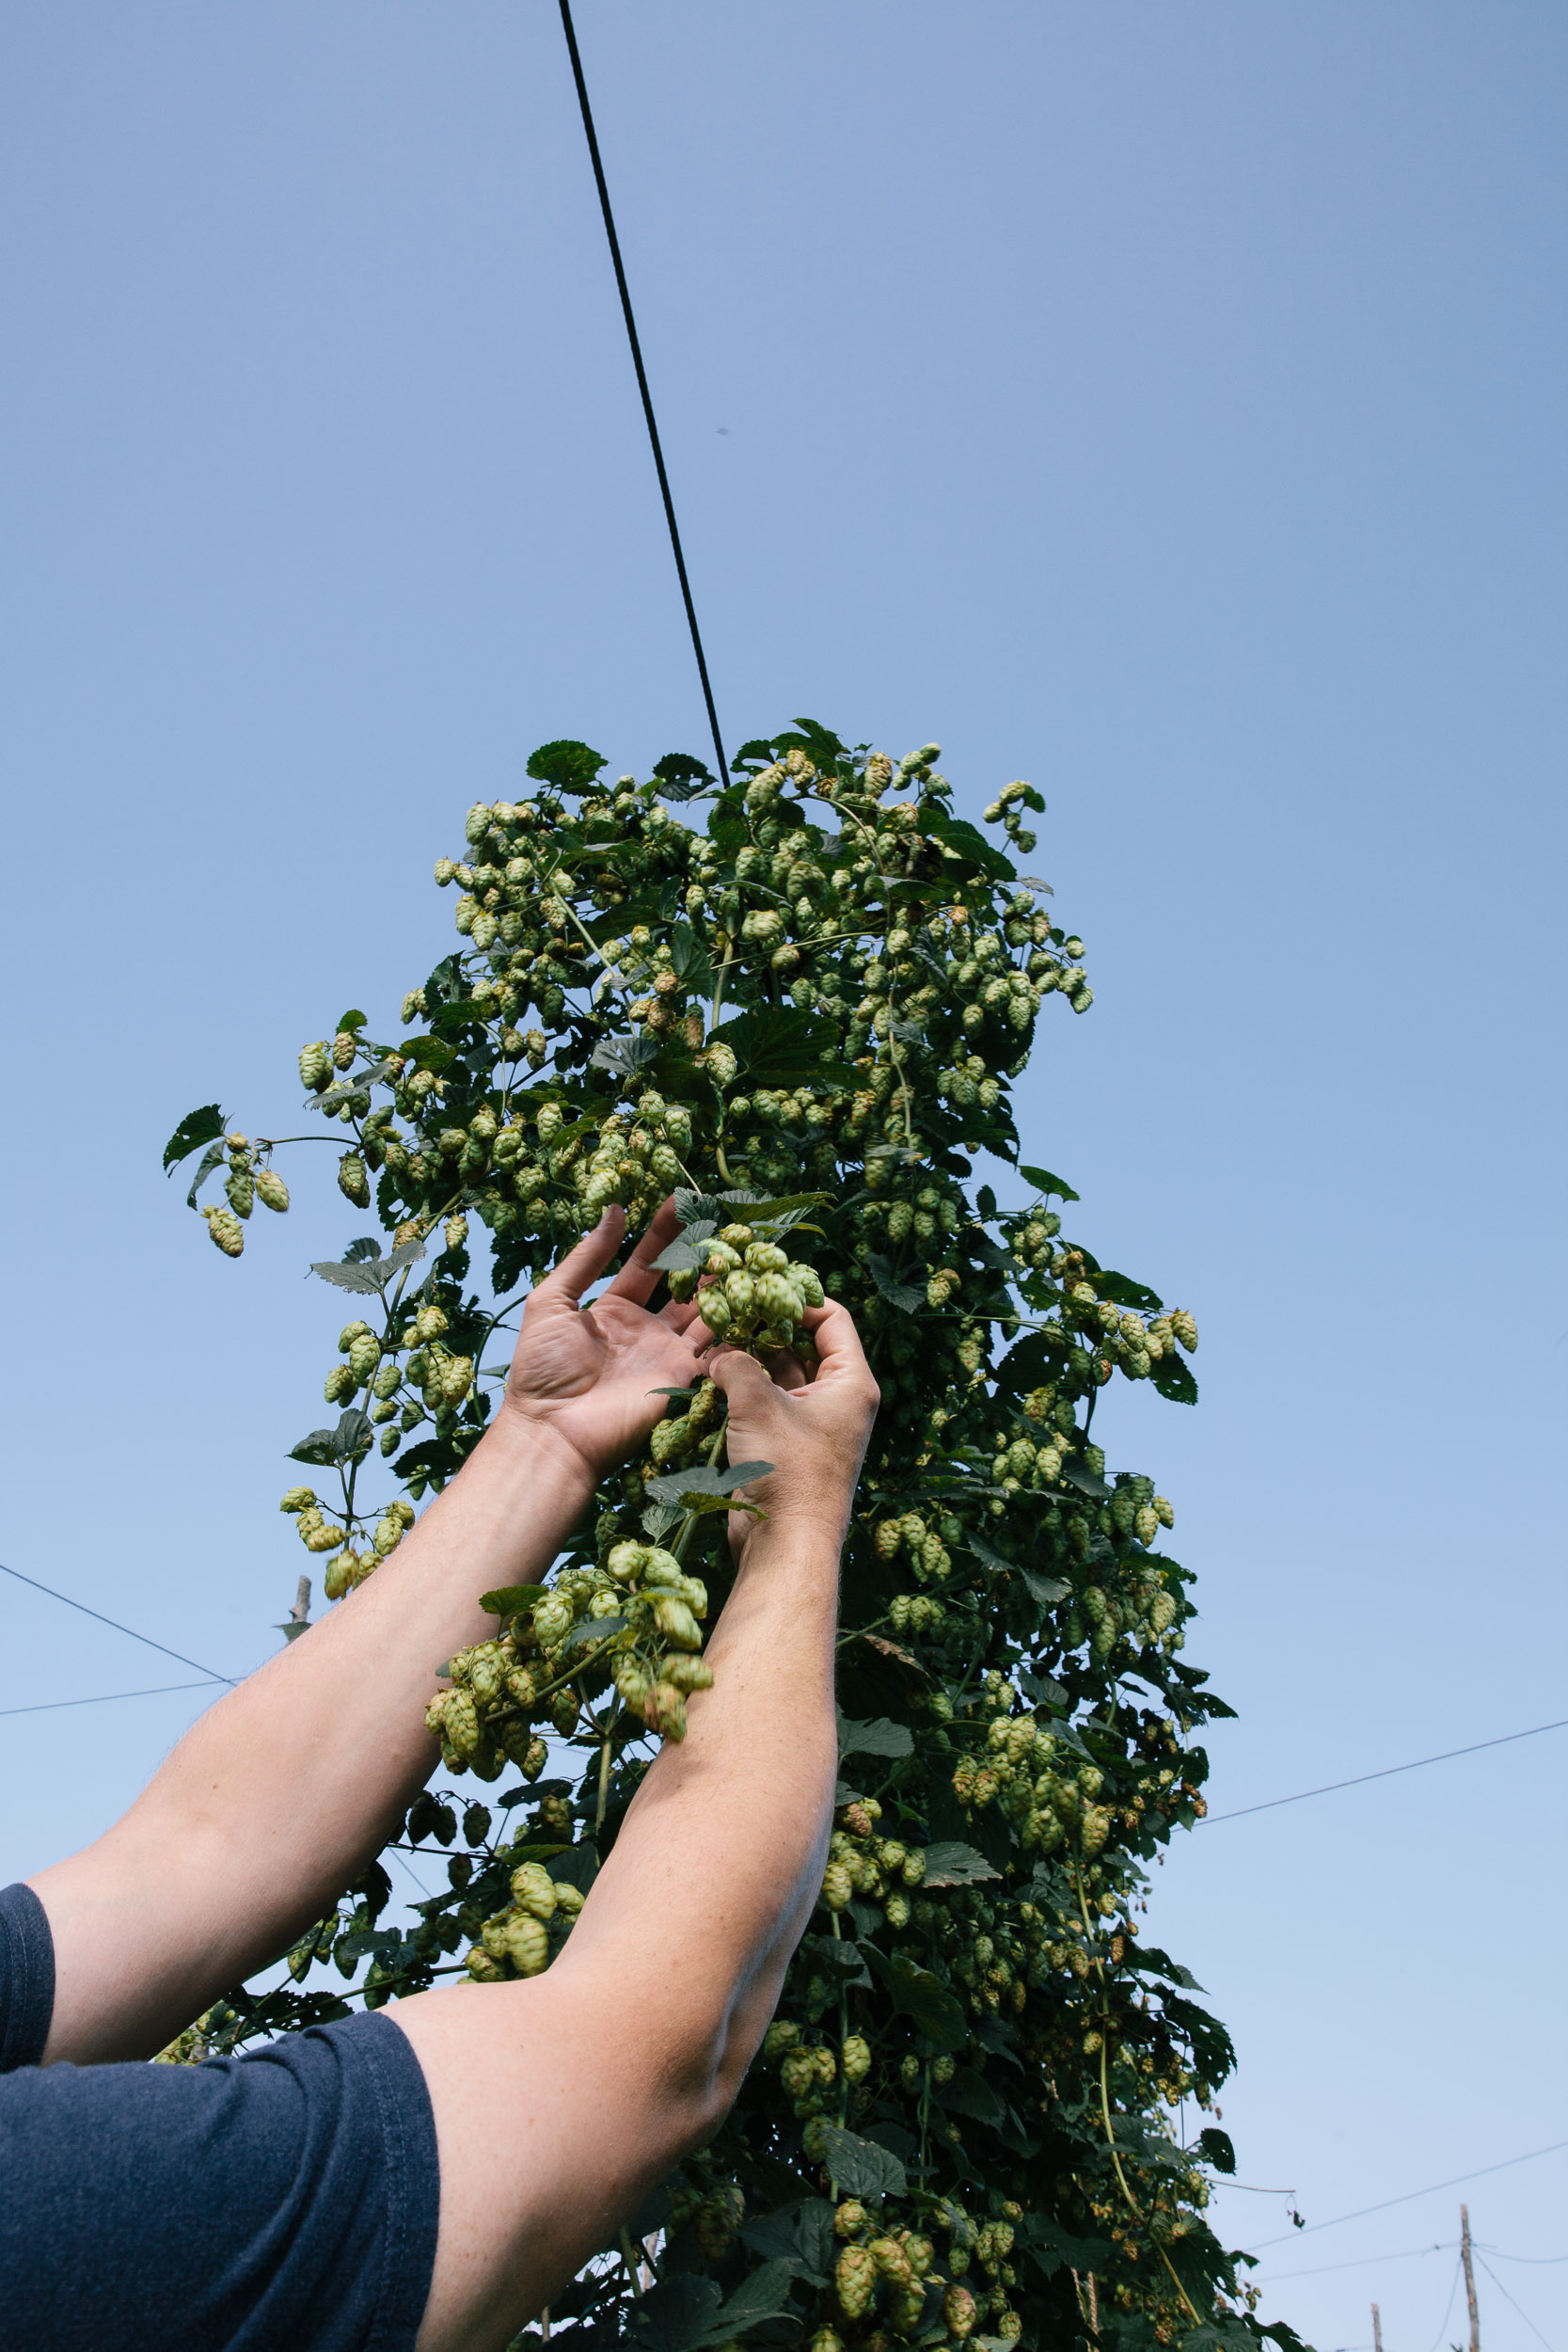 Hands picking hops- travel photography cape breton nova scotia for re:porter magazine